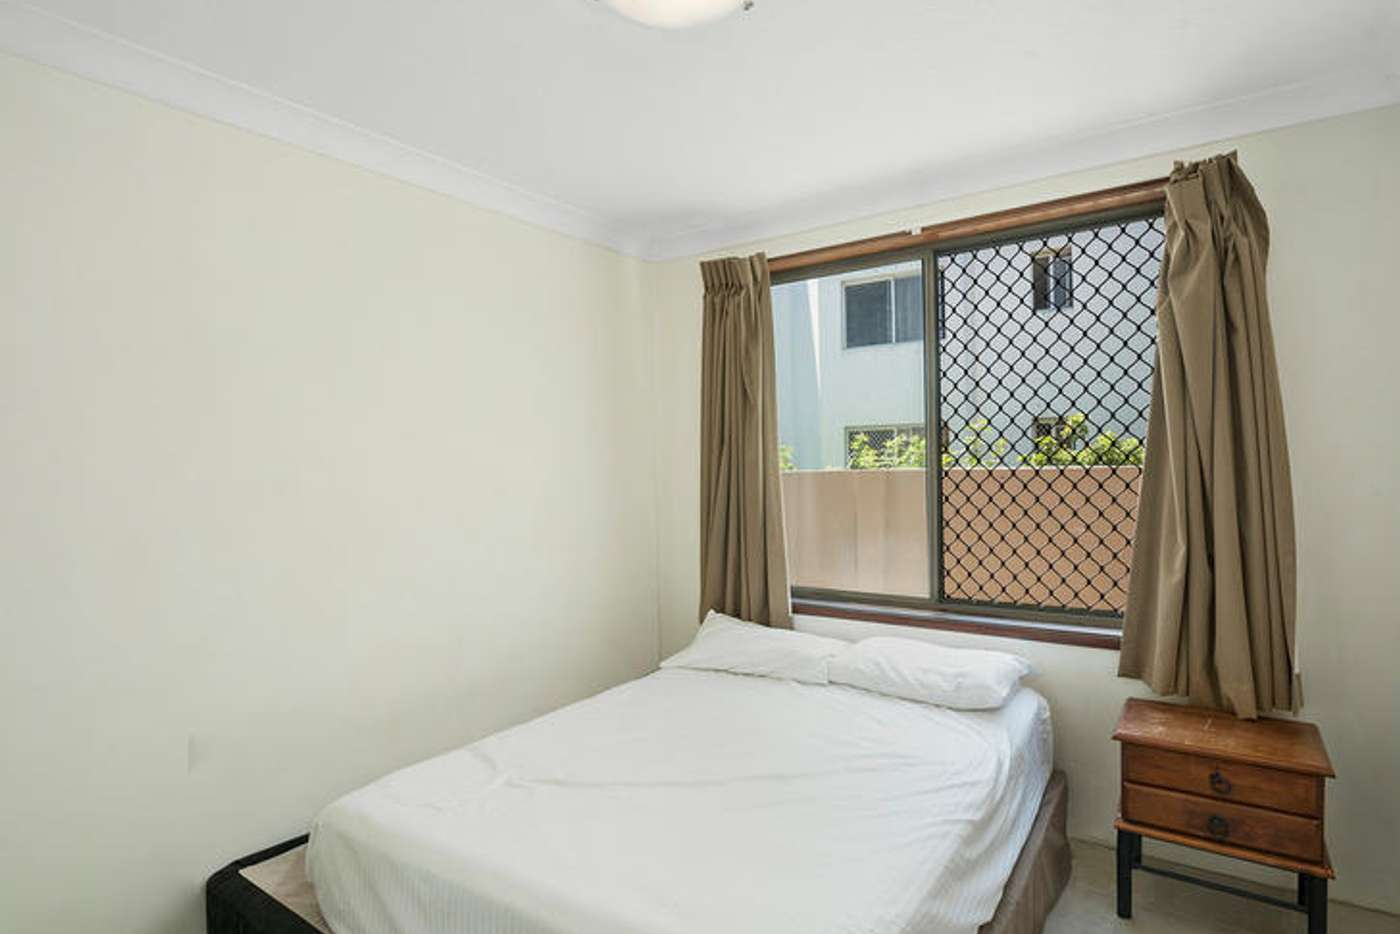 Sixth view of Homely apartment listing, 5/35 Old Burleigh Road, Surfers Paradise QLD 4217